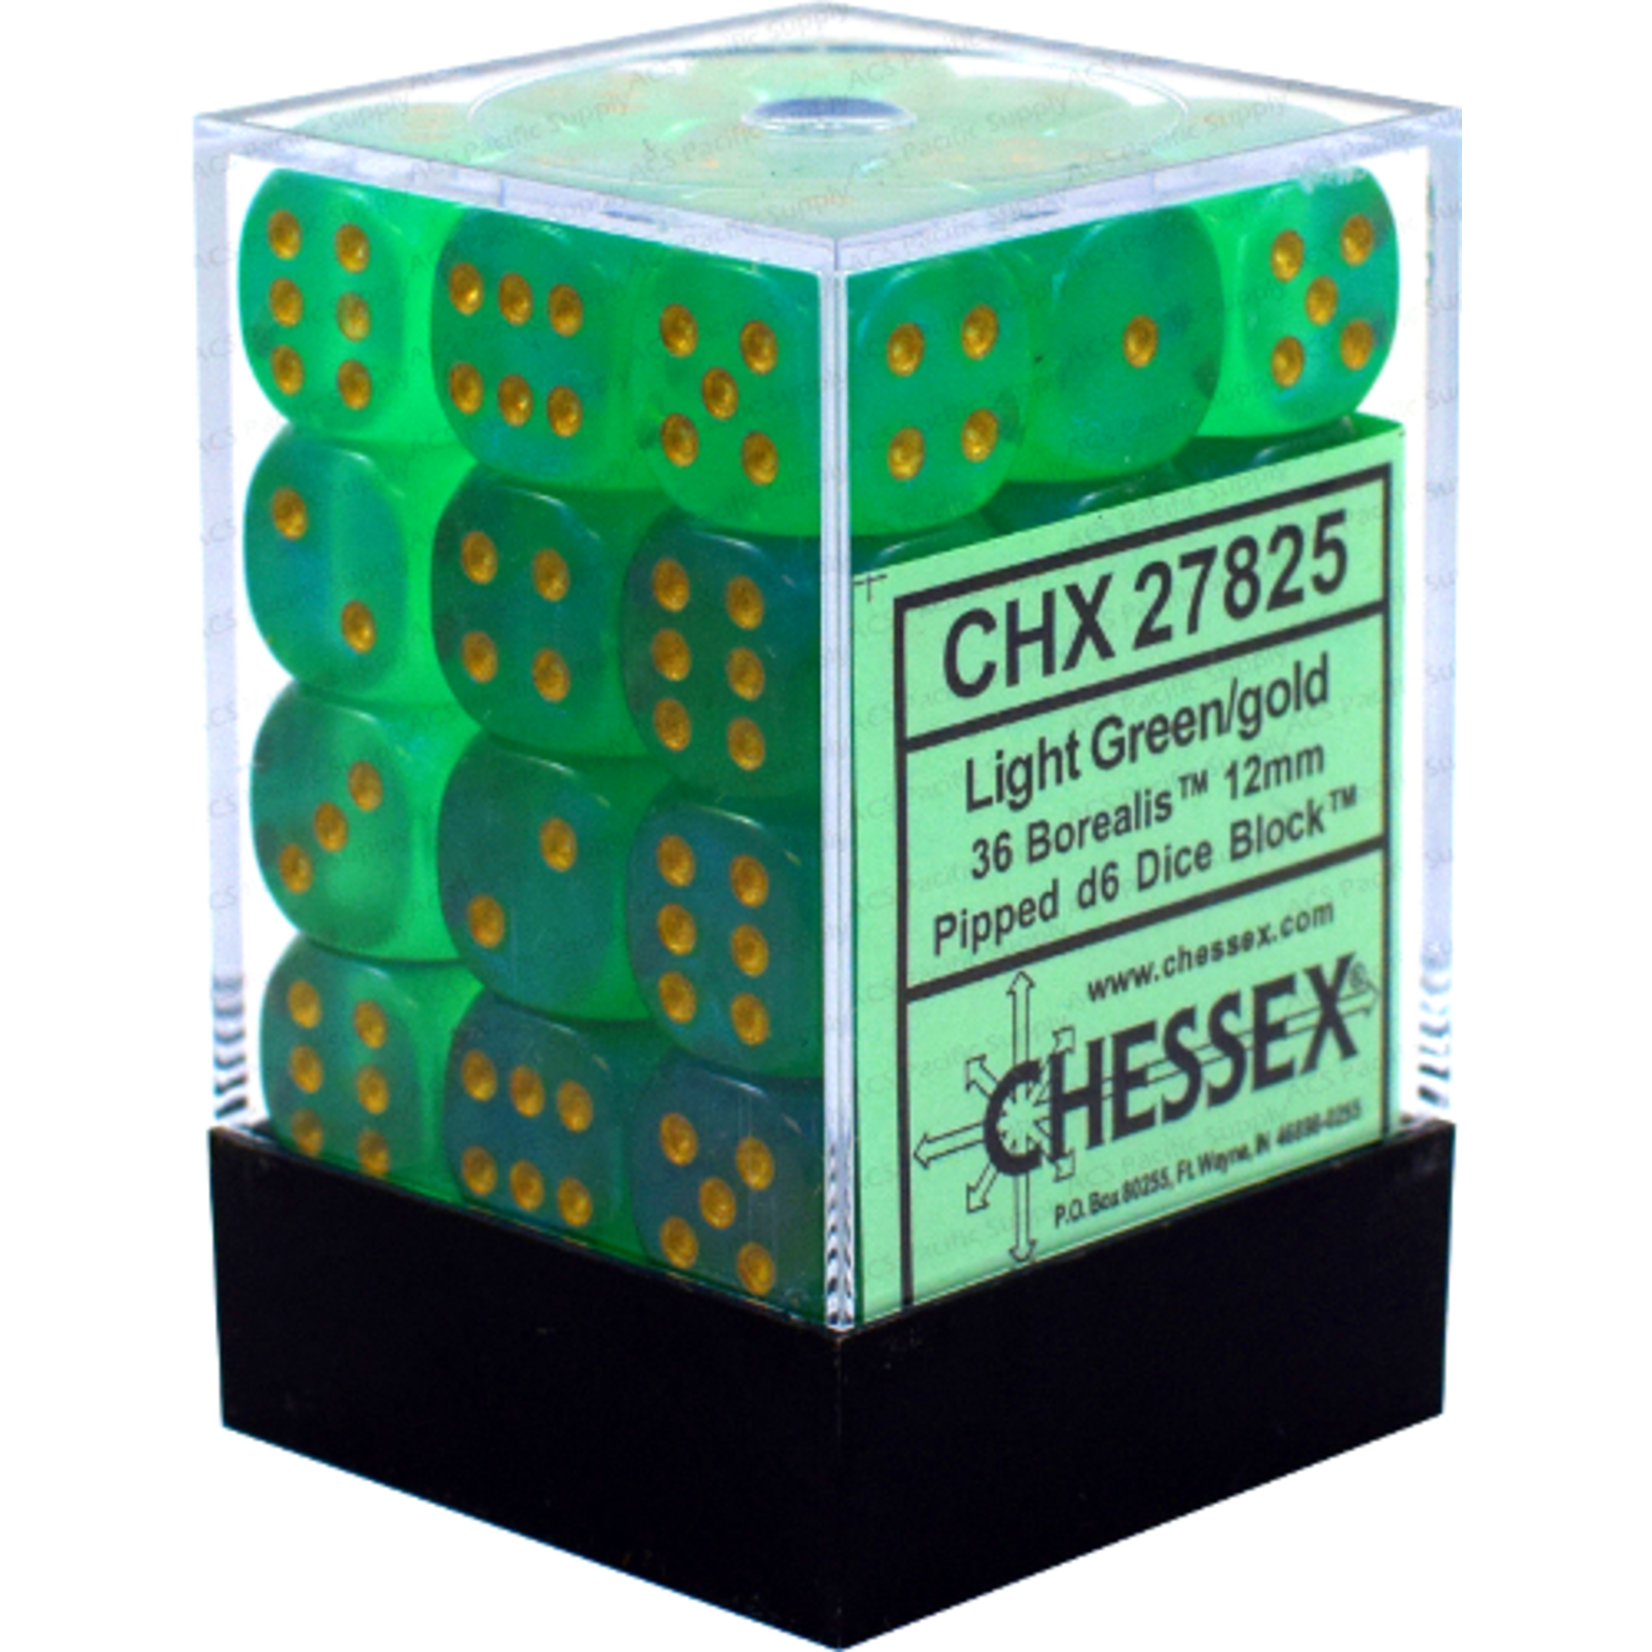 CHX 27825 Borealis Light Green/ Gold (36 count)